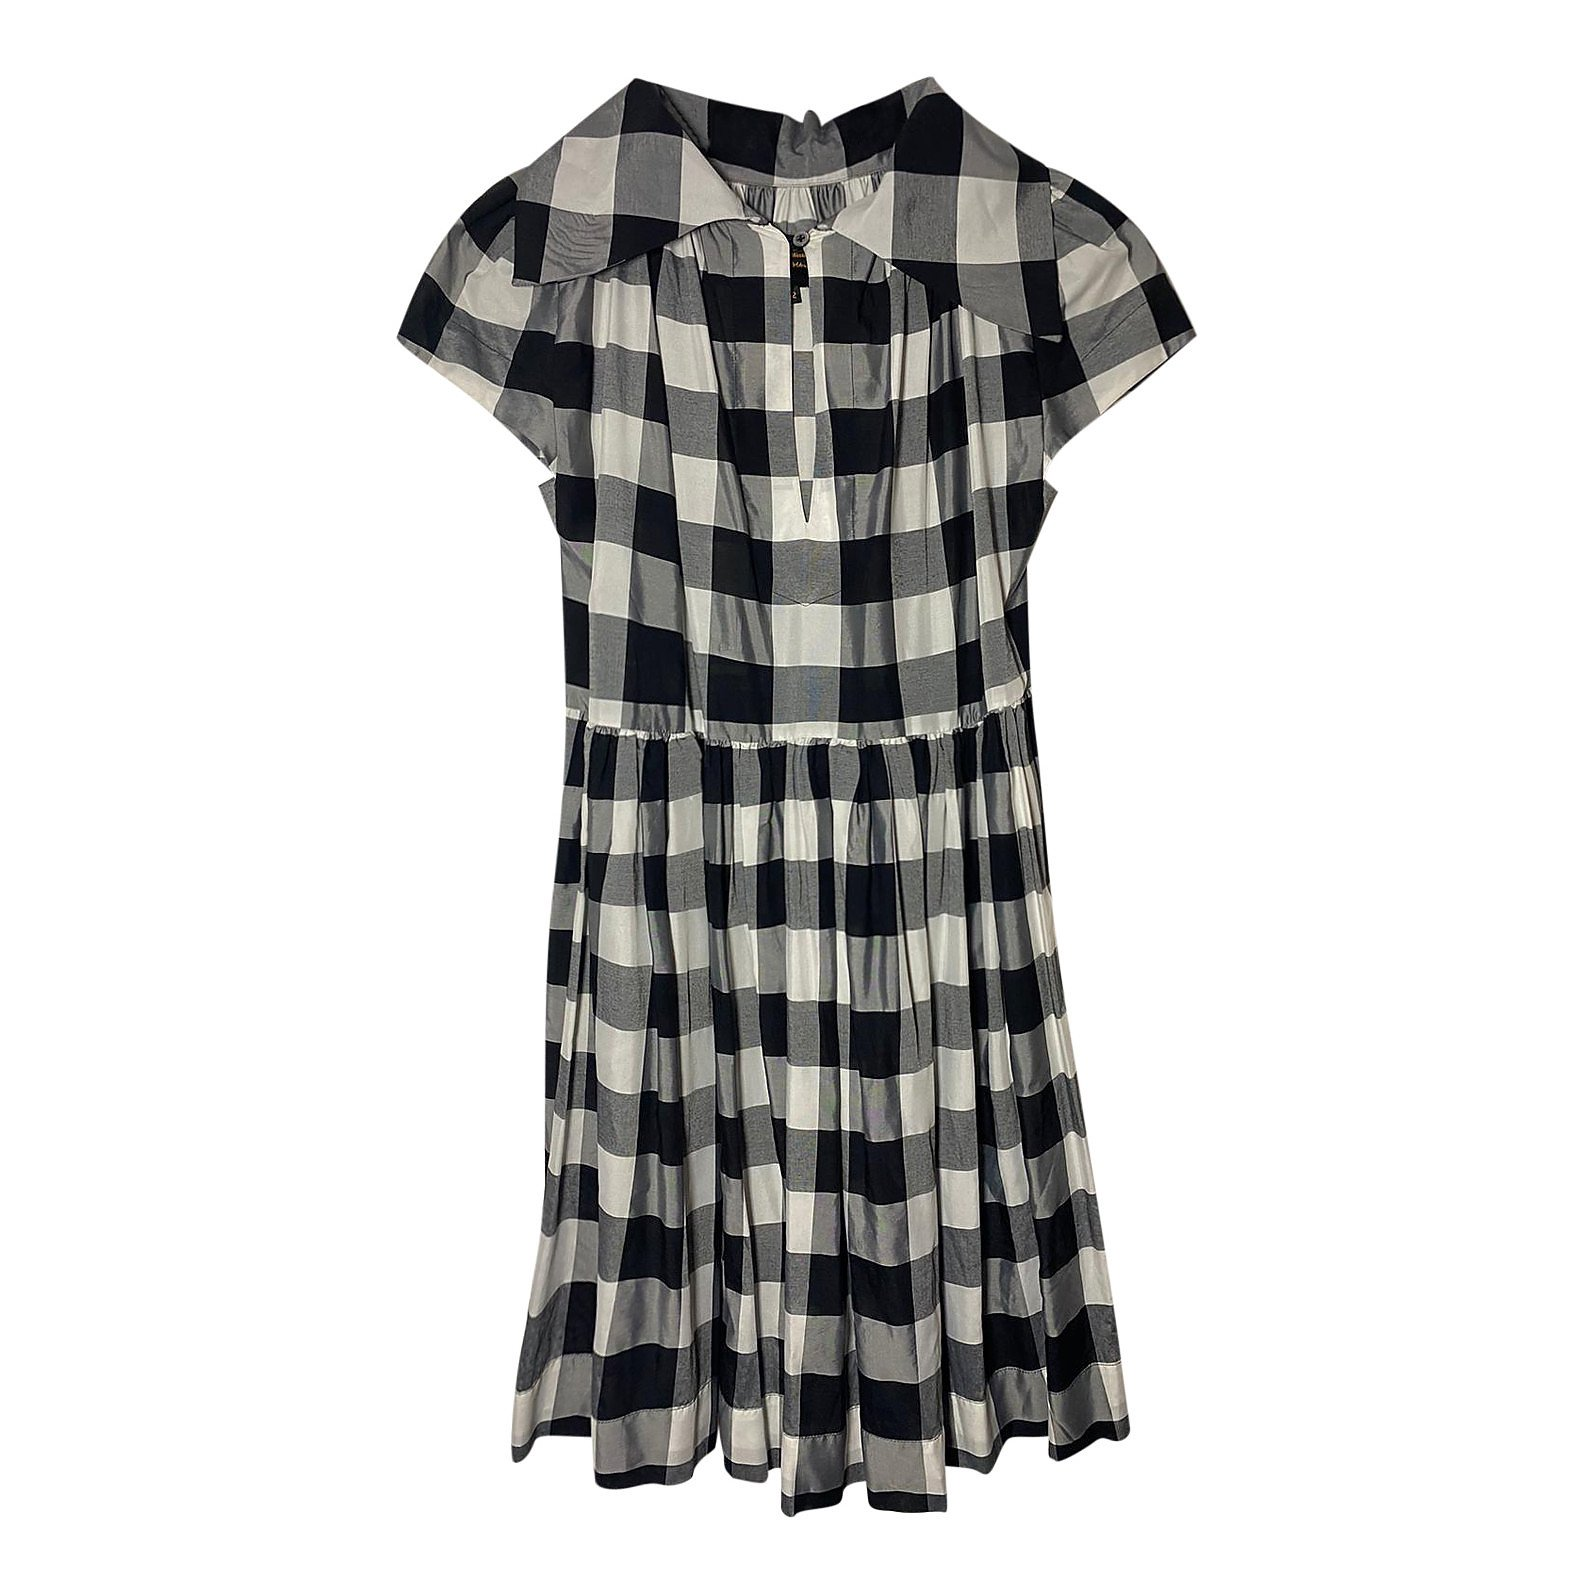 Vivienne Westwood Check Shirt Dress